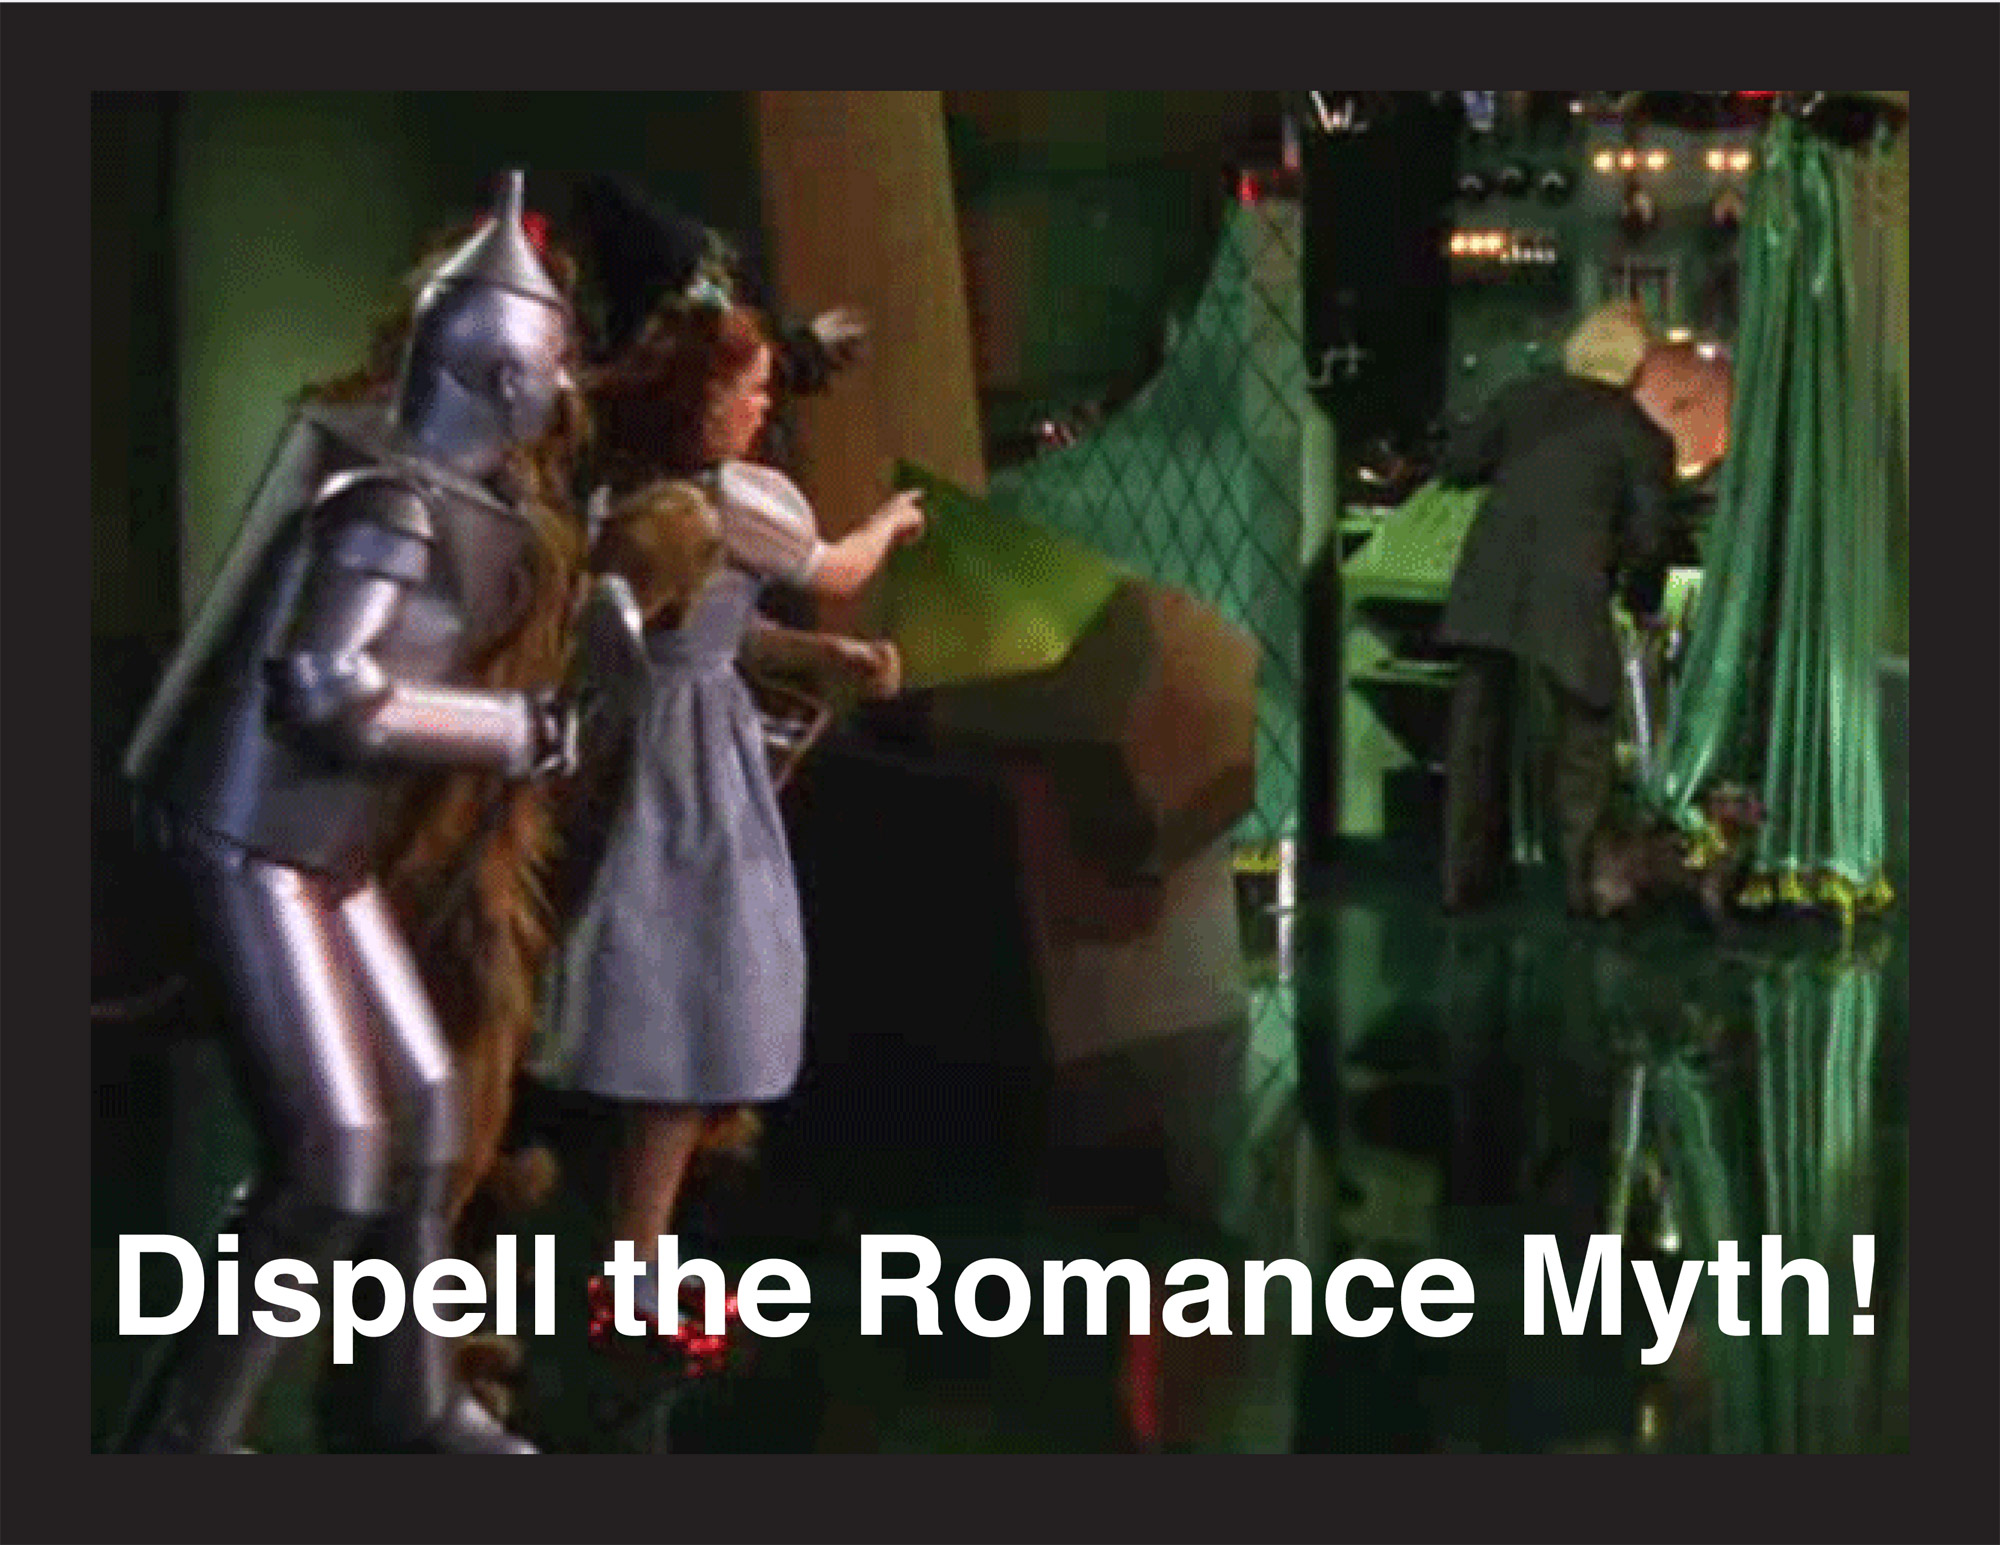 Image of Toto revealing the wizard in the film The Wizard of Oz with text reading 'Dispel the Romance Myth'